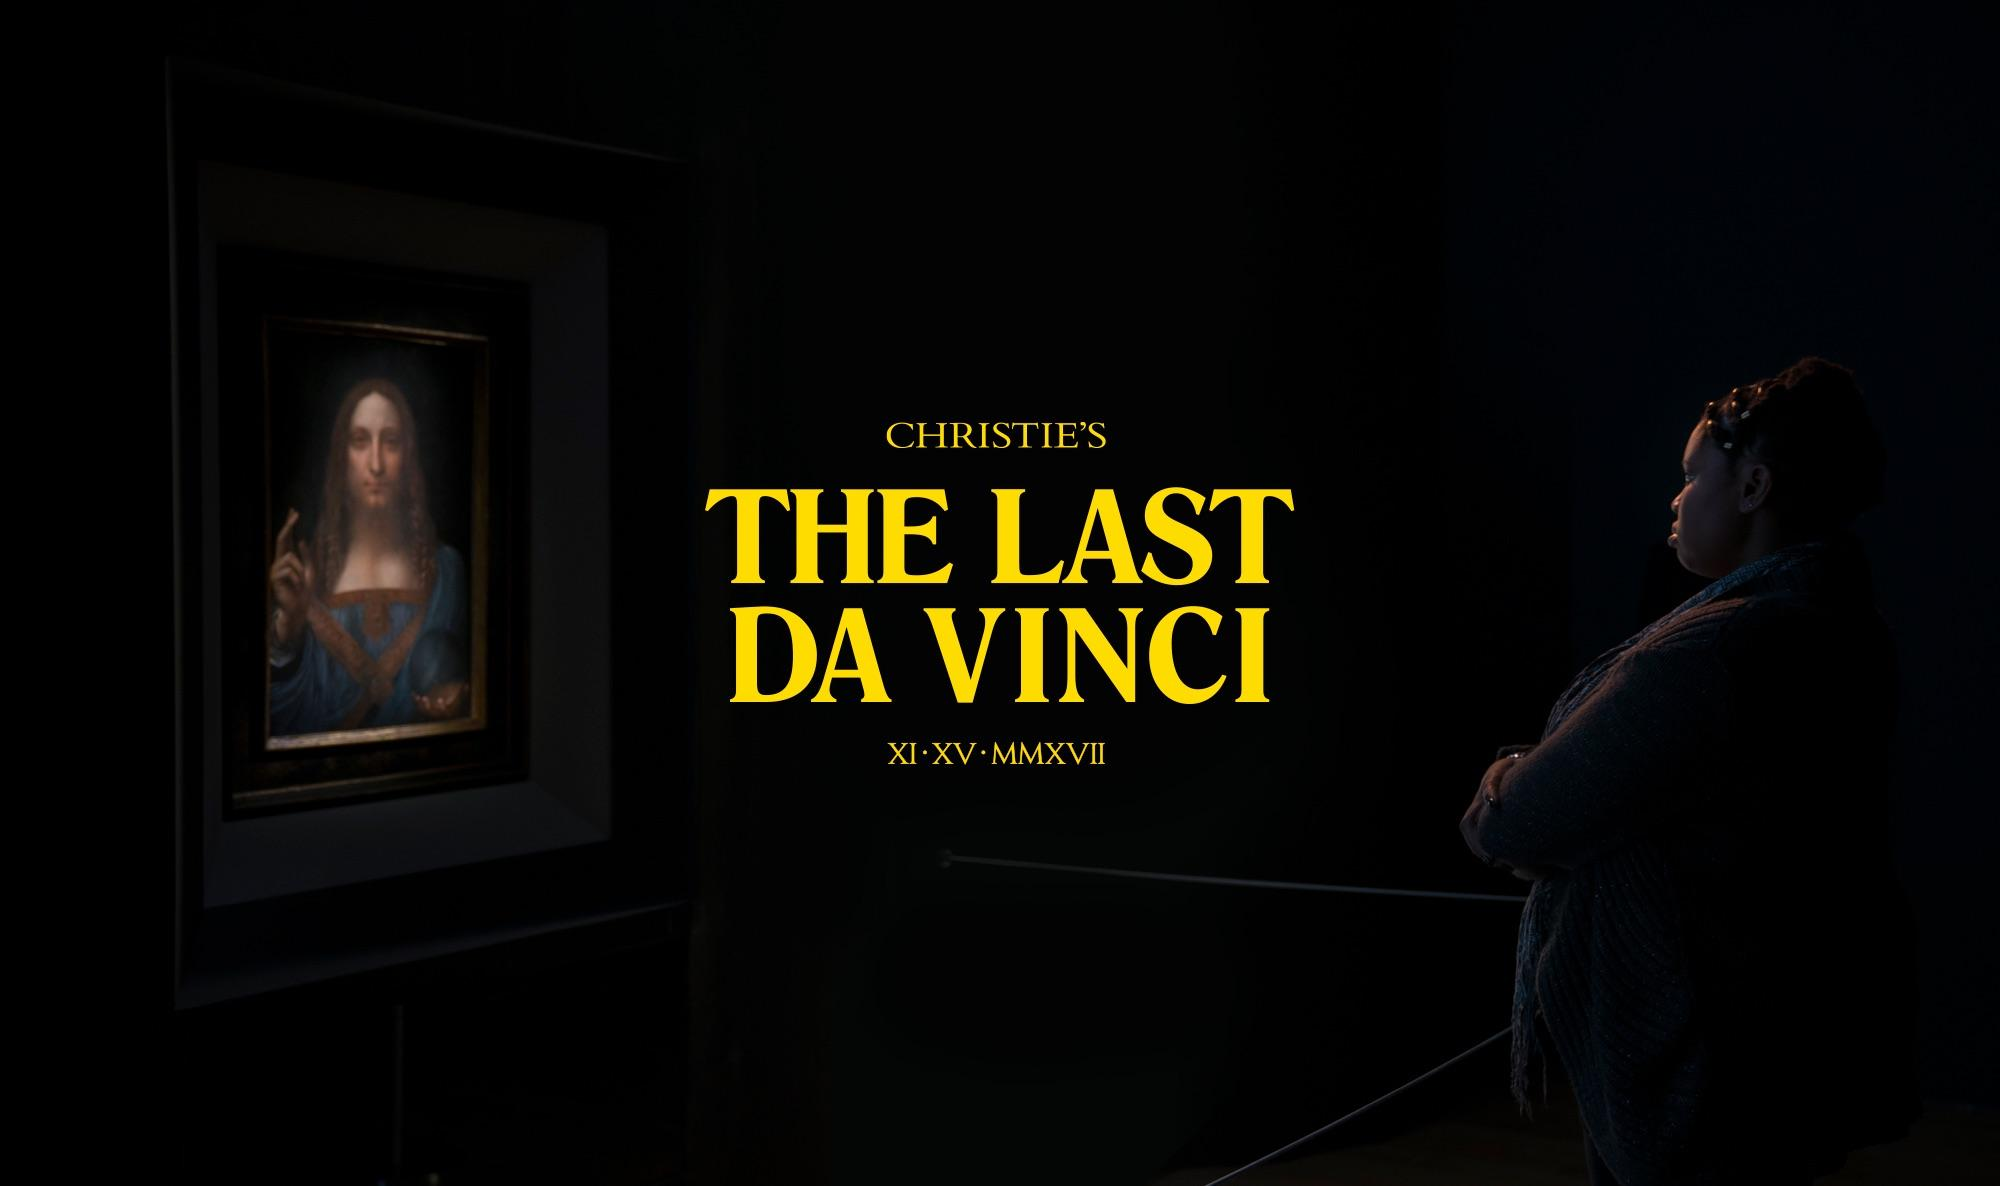 Christie's Film Ad - The Last da Vinci